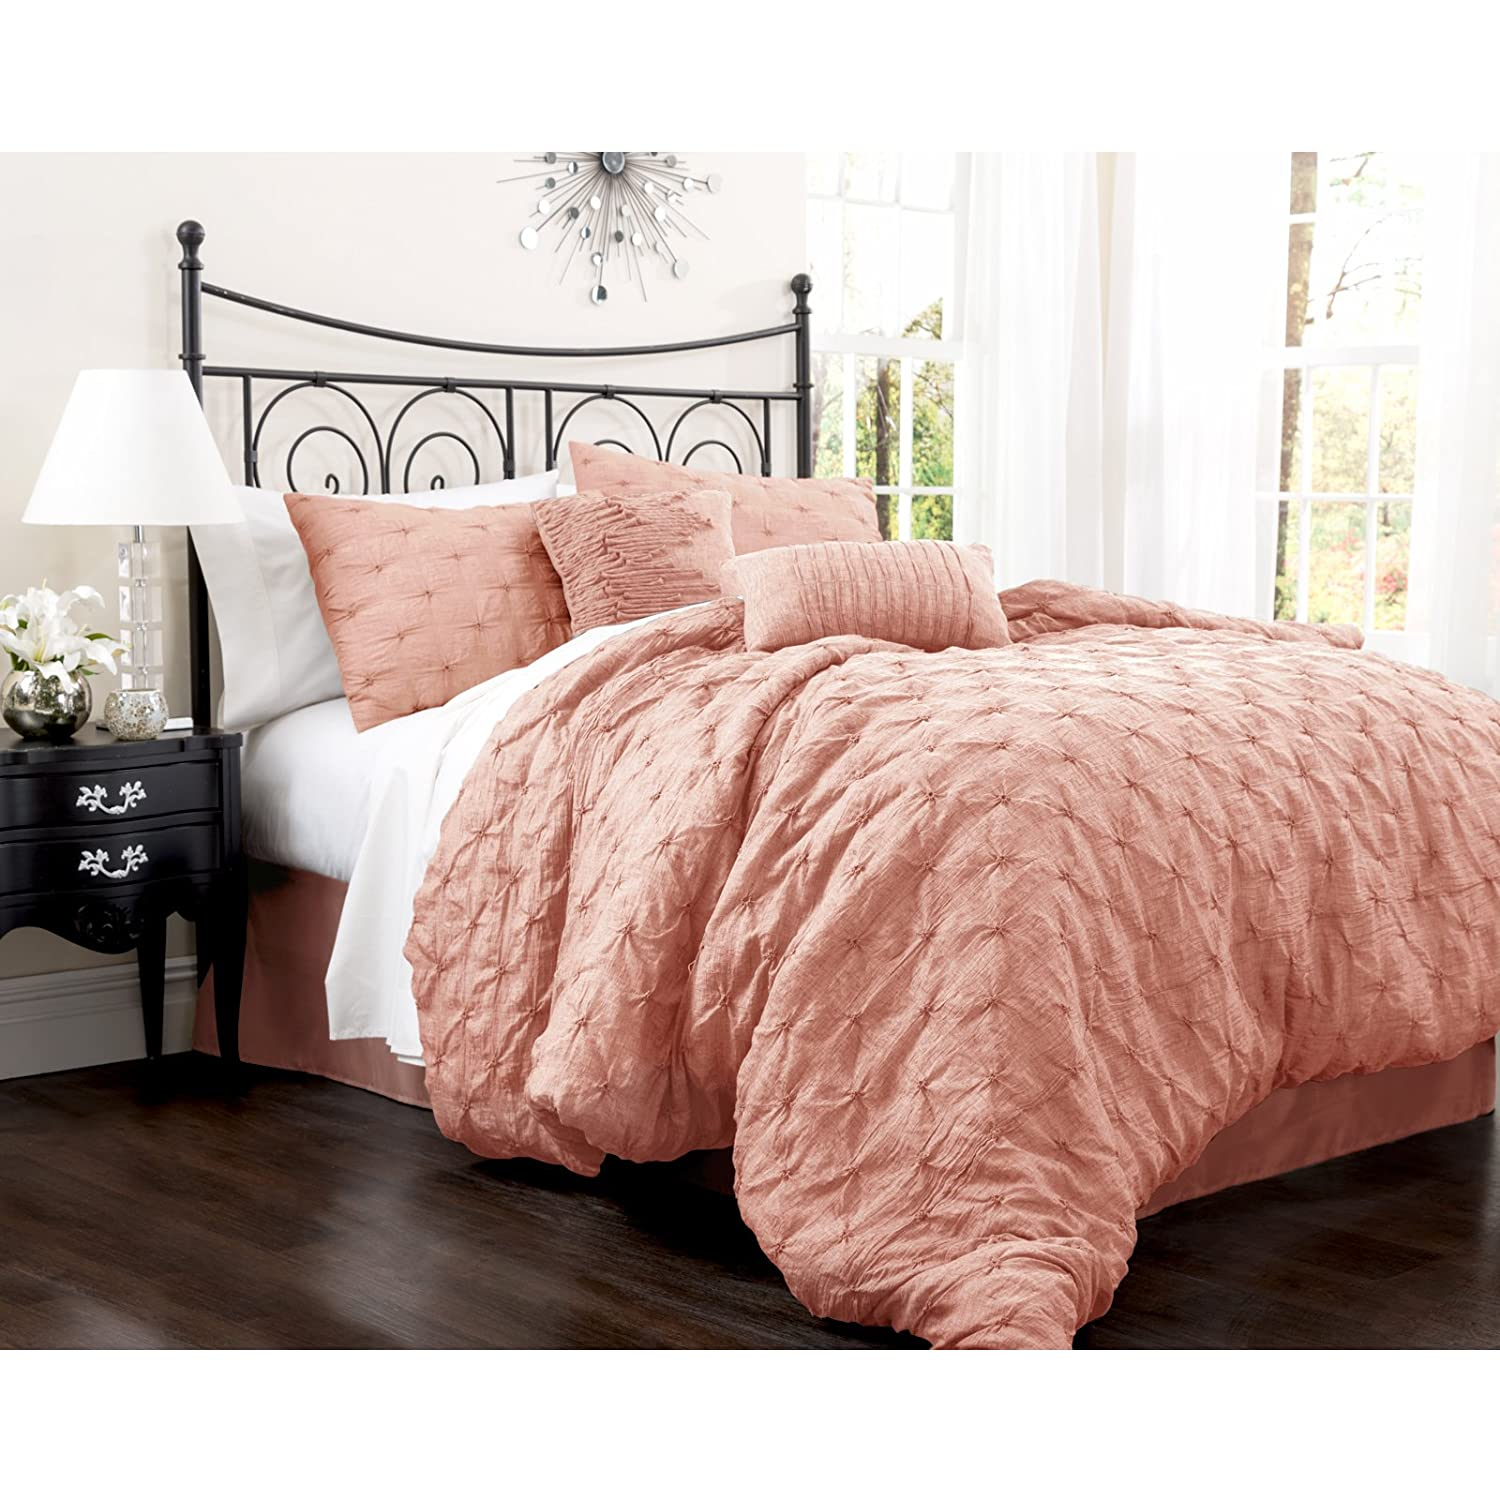 comforter pillow two accent set pillows sheet modern comforters and bedding peach sets colored shams throw